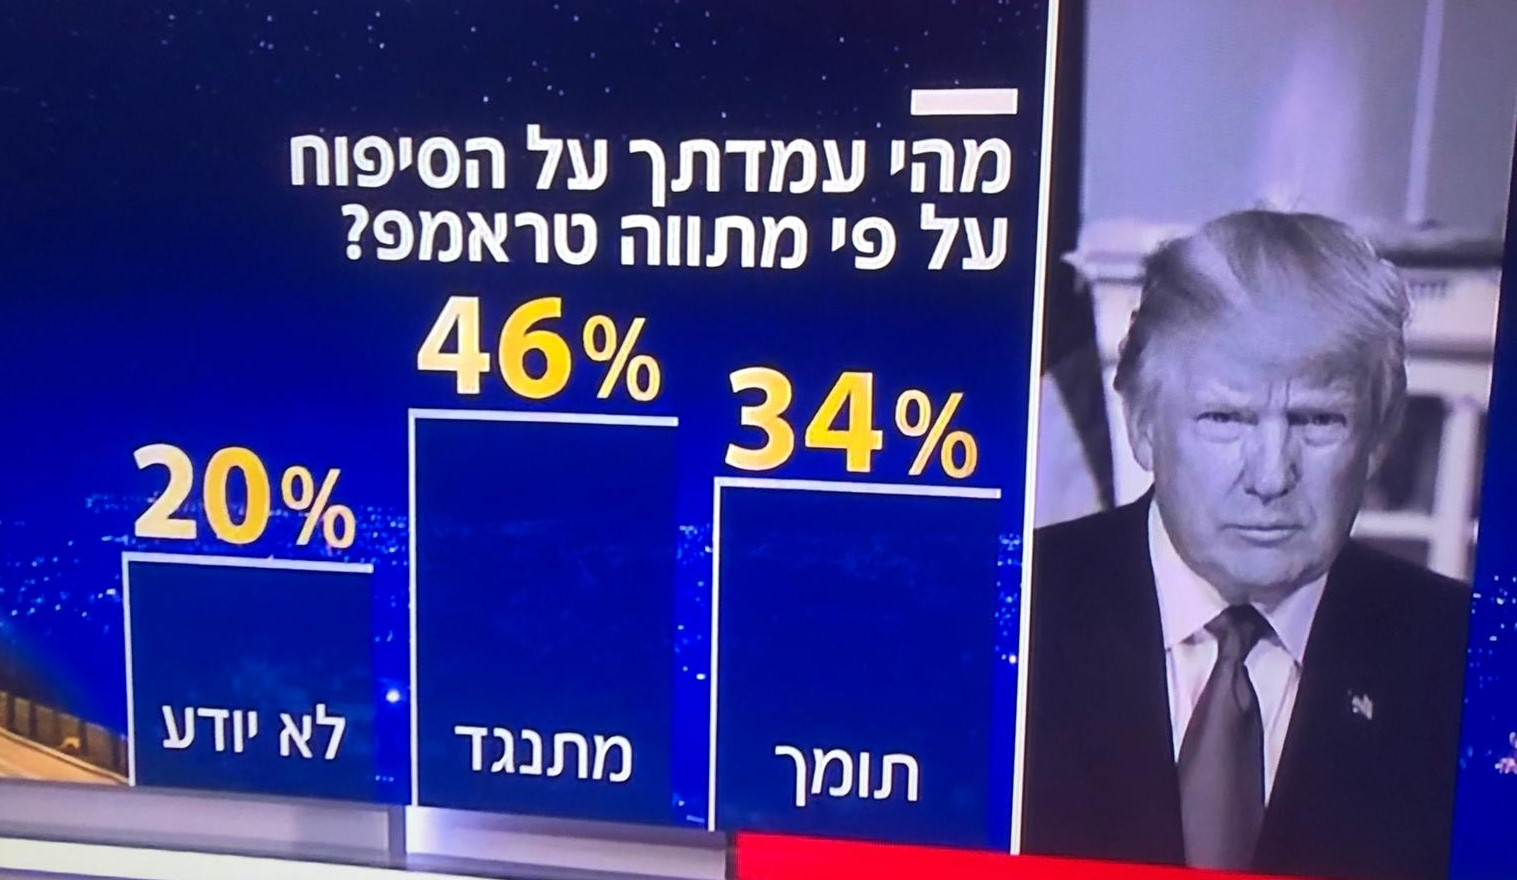 "A clear plurality of citizens of Israel oppose Netanyahu's plan for annexation of territories in the West Bank, supported the Trump administration. The poll carried by Channel 12 News and broadcast last Monday, June 8 asked: What is you position on annexation along the lines of the Trump proposal?"" 46% were against, 34% were in favor, and 20% did not know."